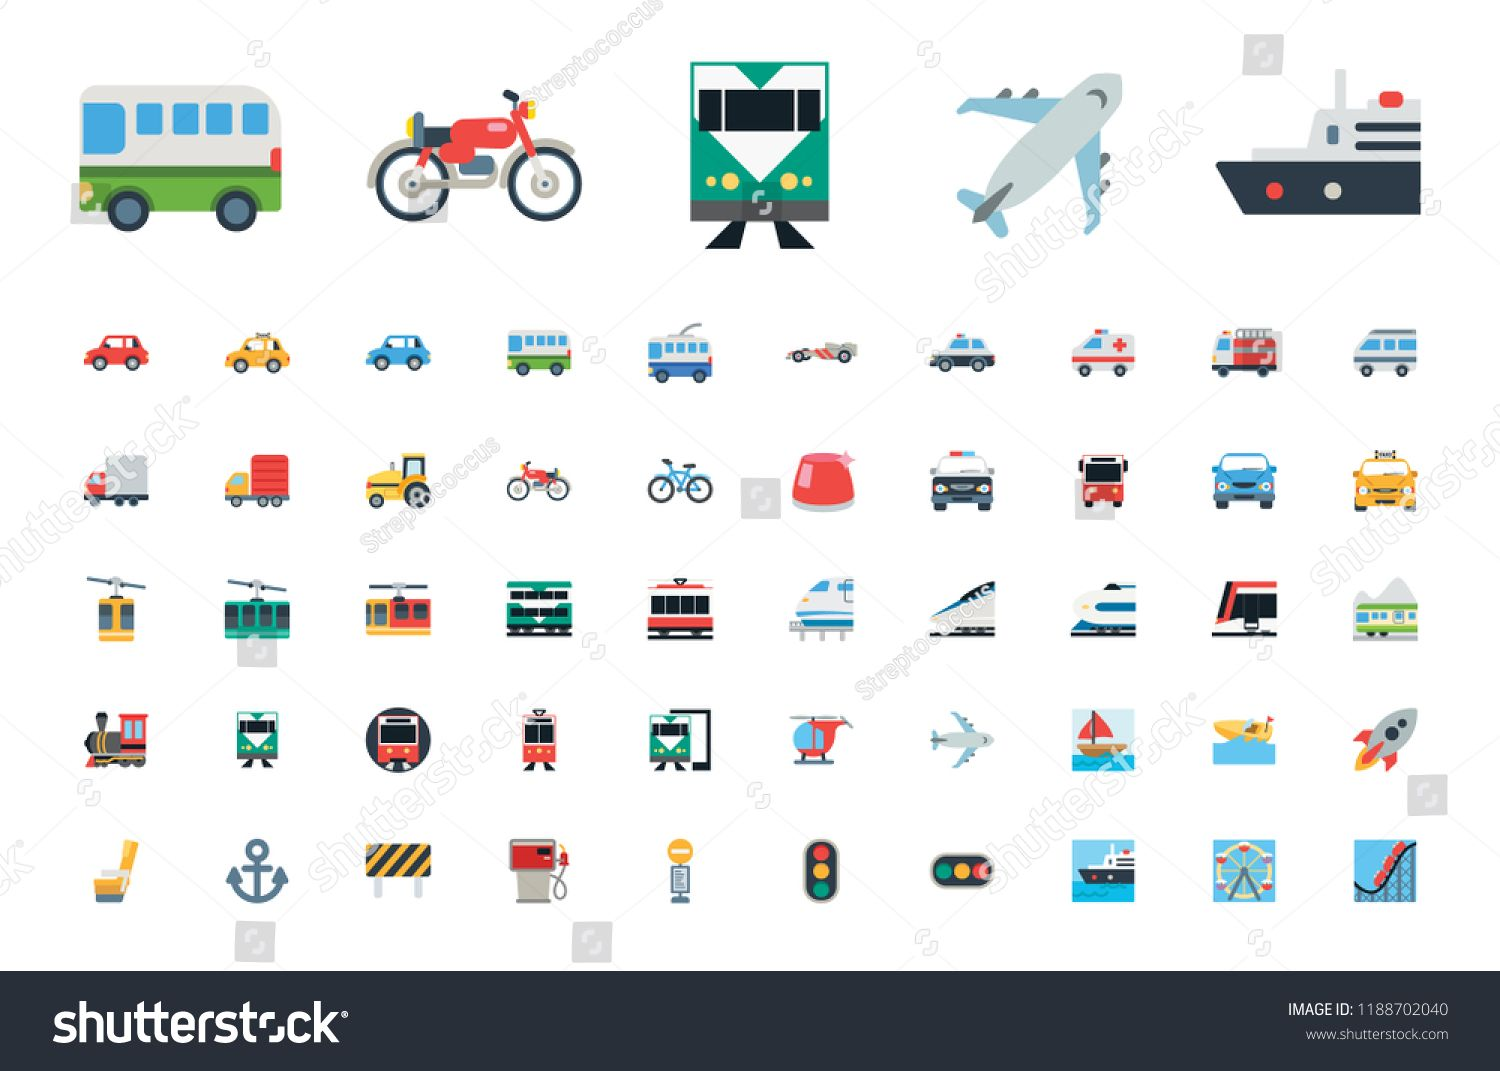 All type of Transport, Transportation, Logistics, Delivery